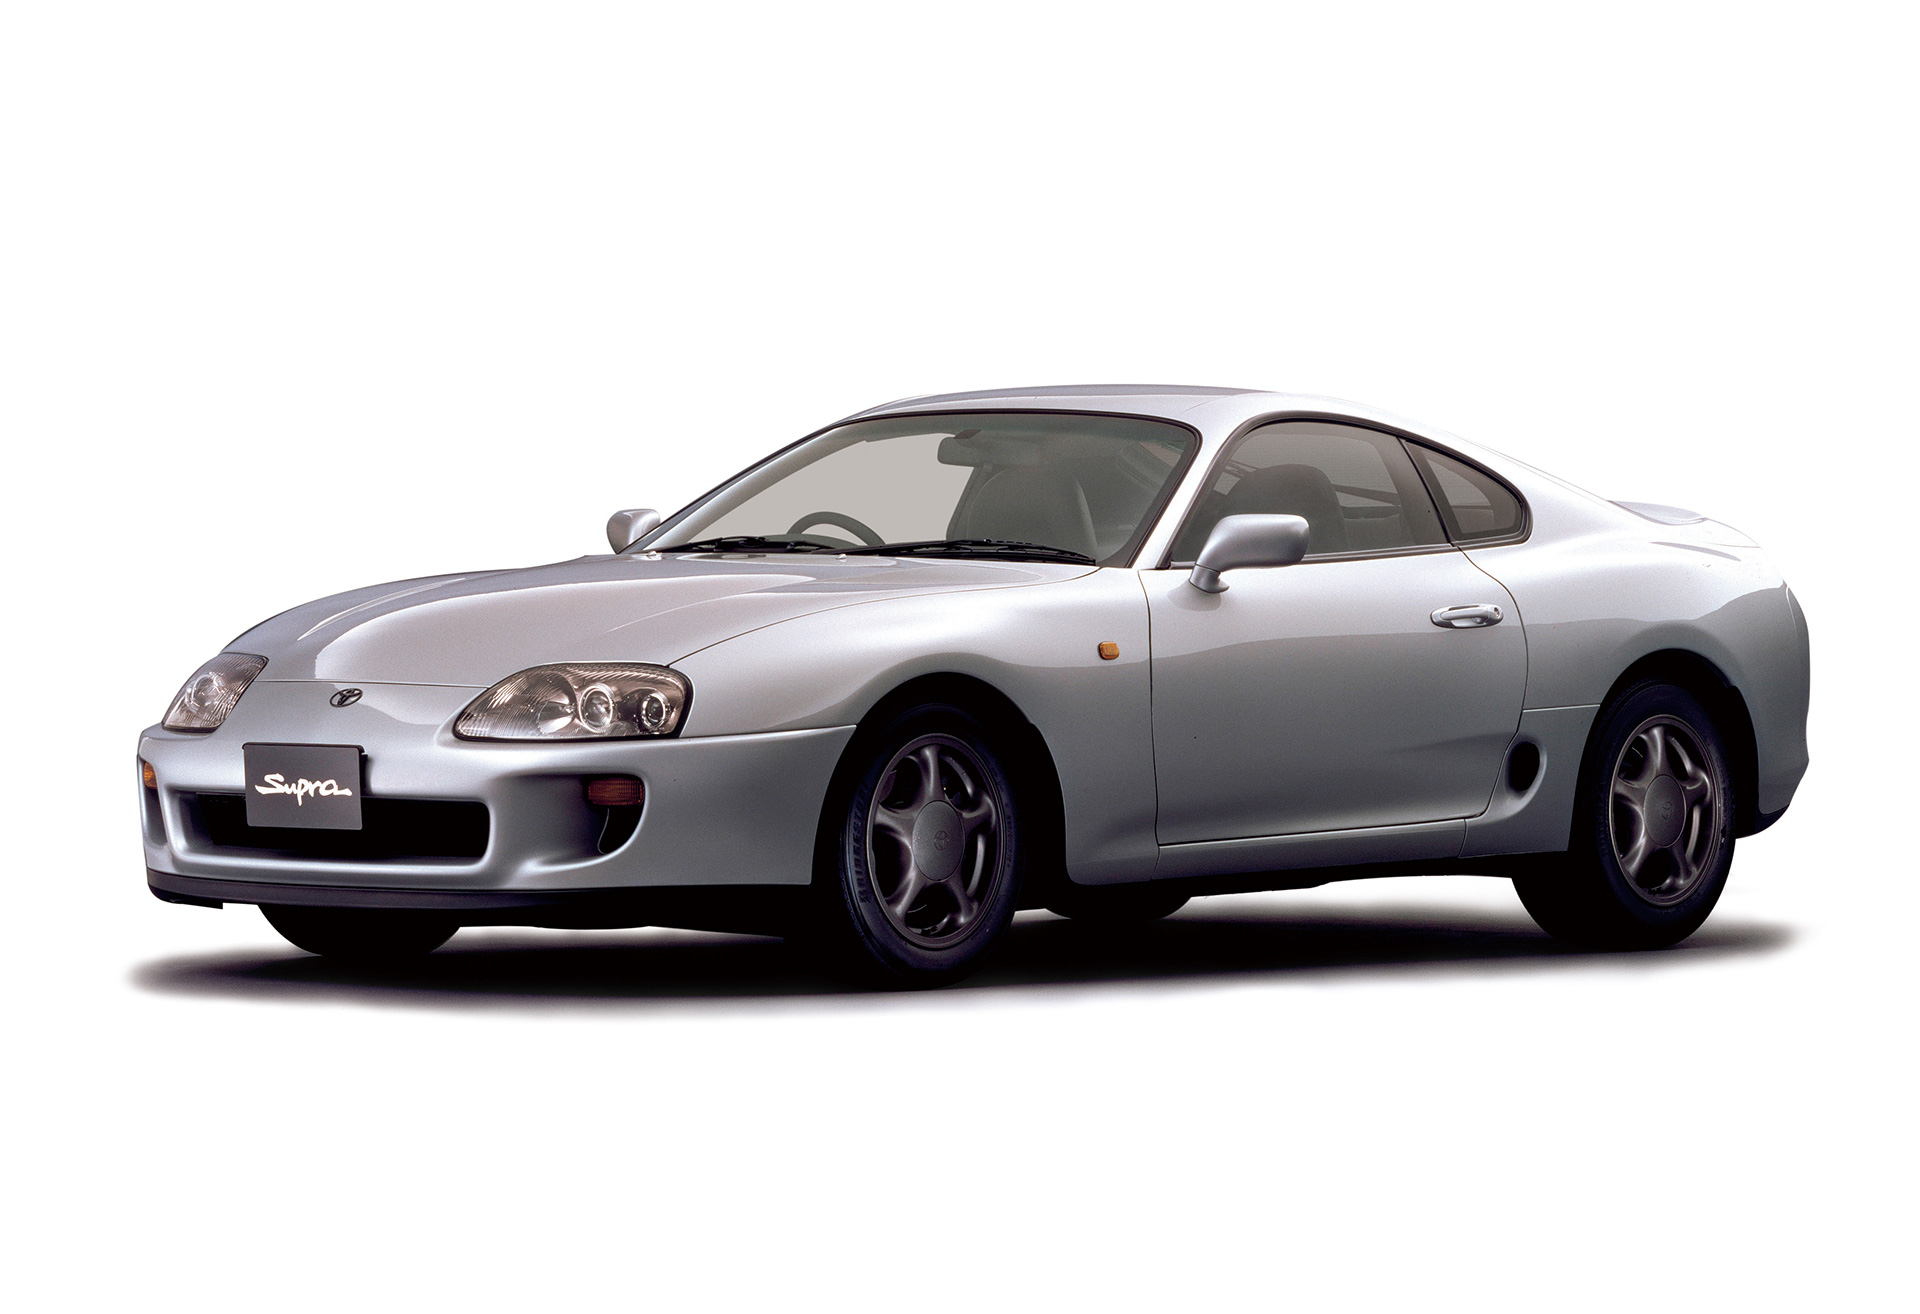 Toyota to Reproduce and Sell Additional Spare Parts for the A70 and A80 SupraGR Heritage Parts Project - Image 1